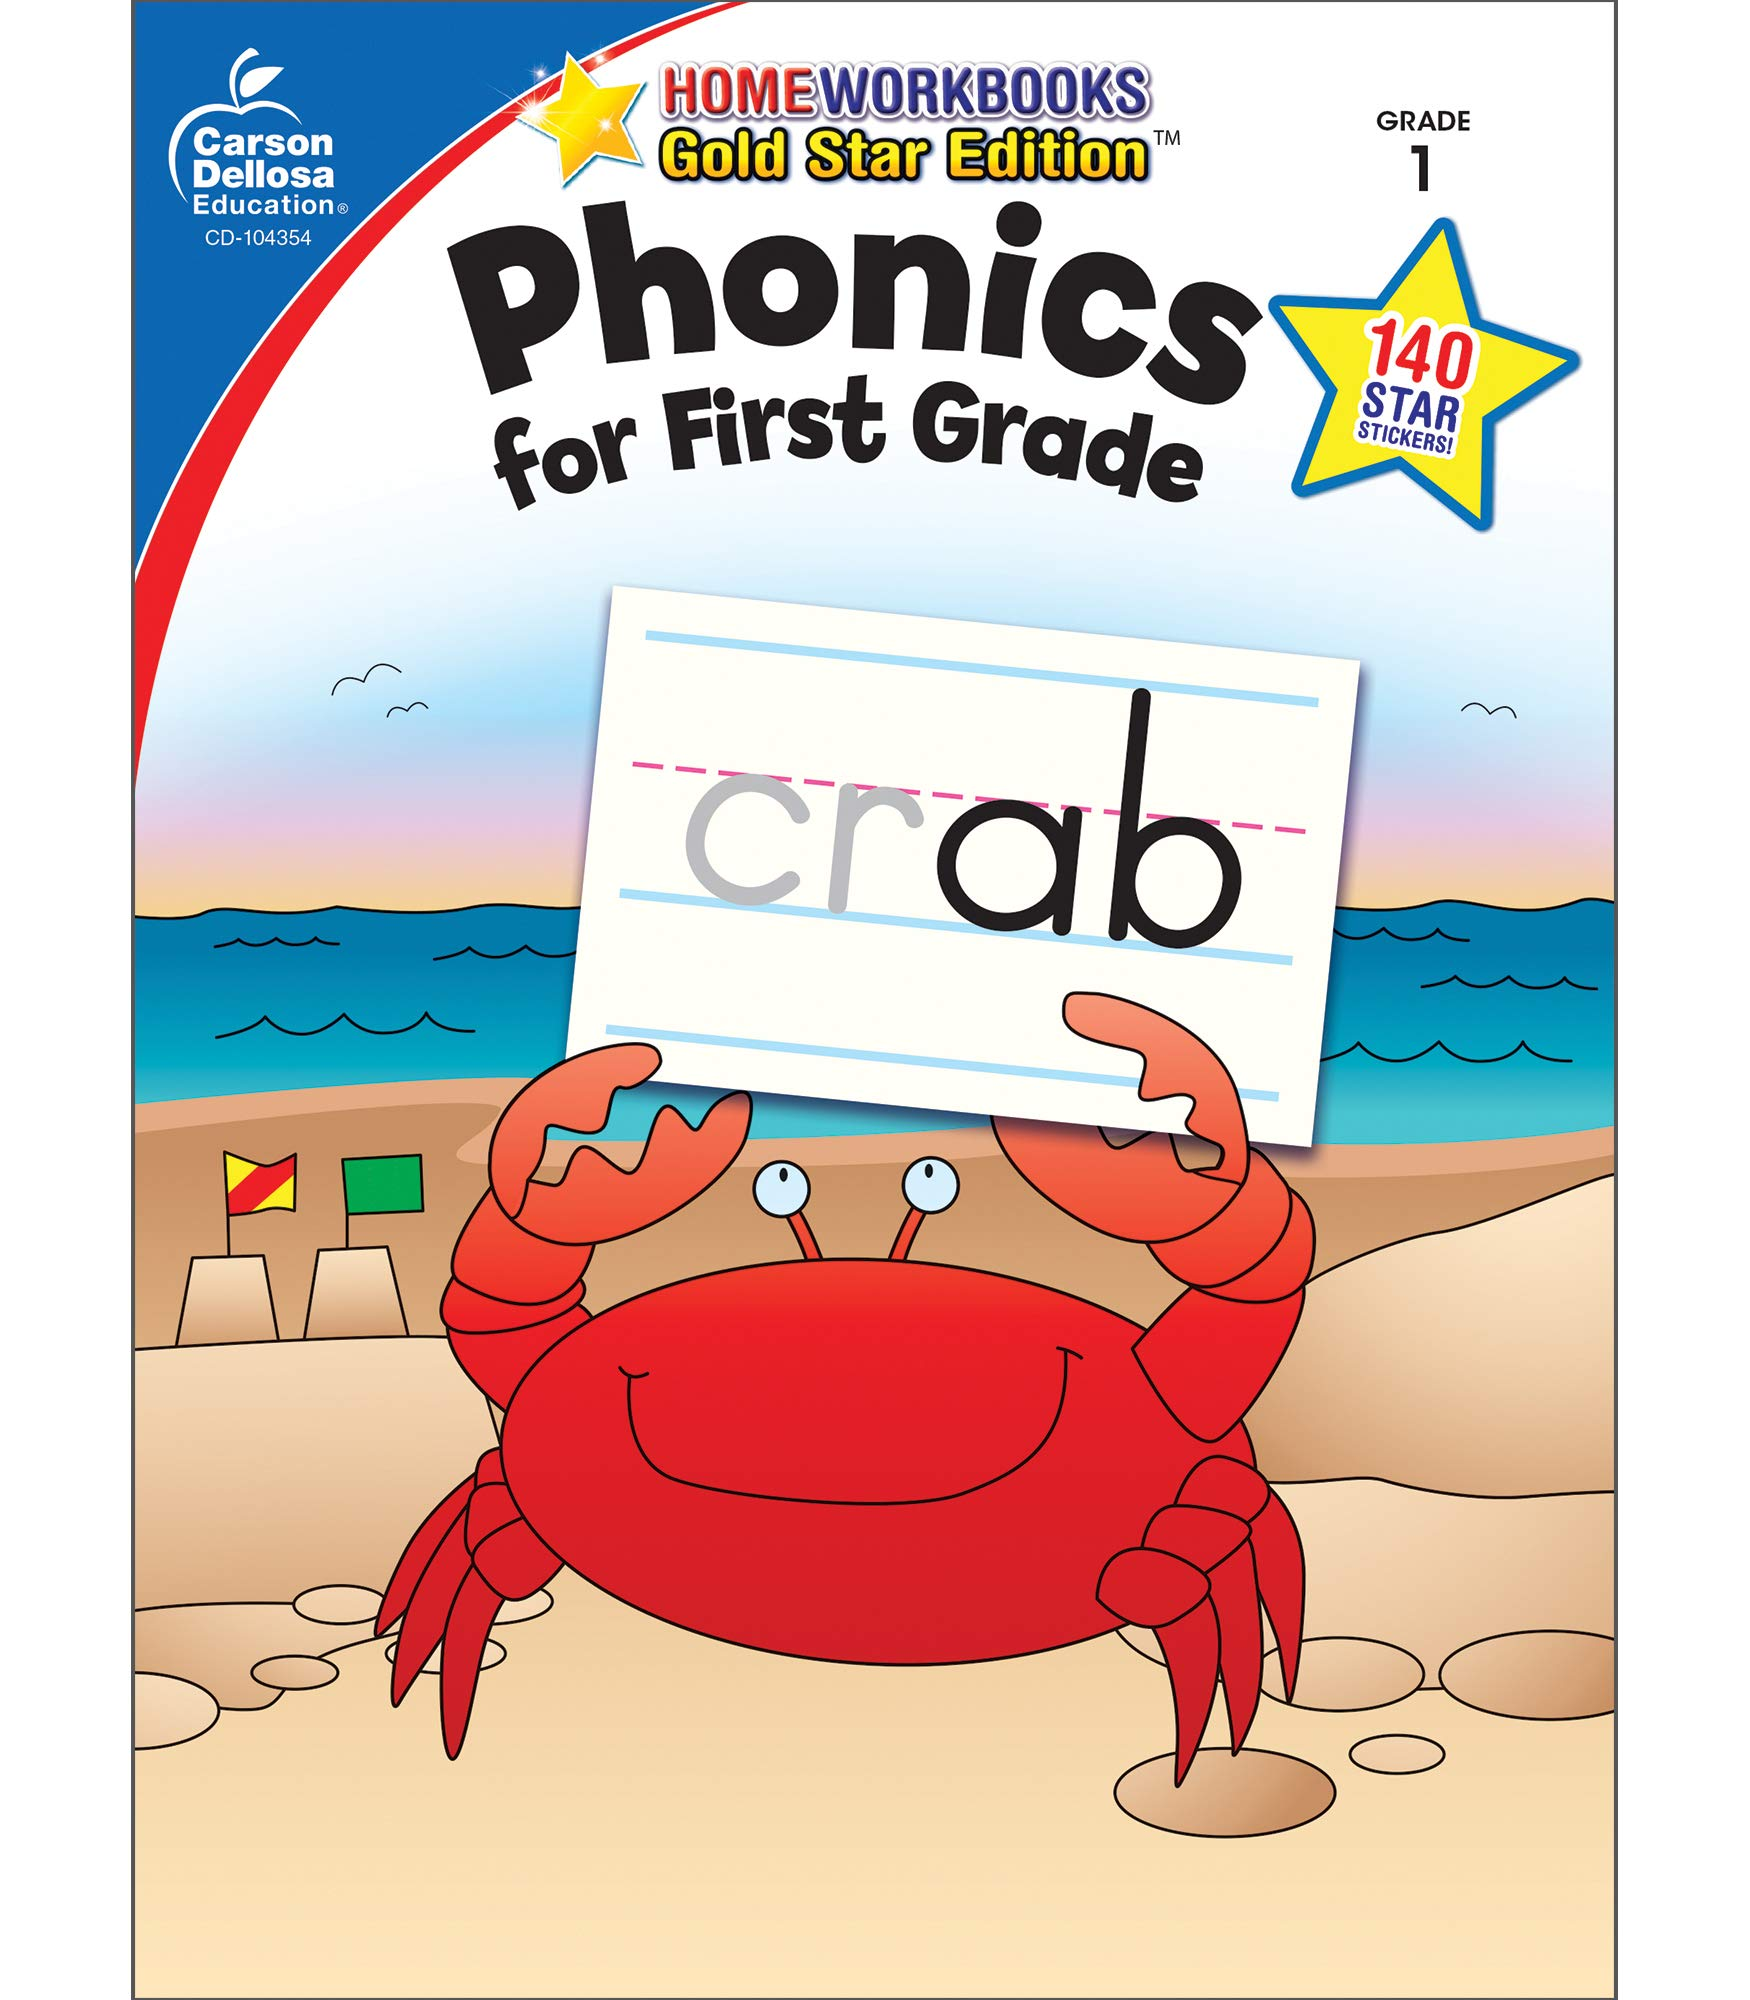 photograph about Home and Family Christmas Workbook referred to as Phonics for To start with Quality, Quality 1: Gold Star Variation (Household